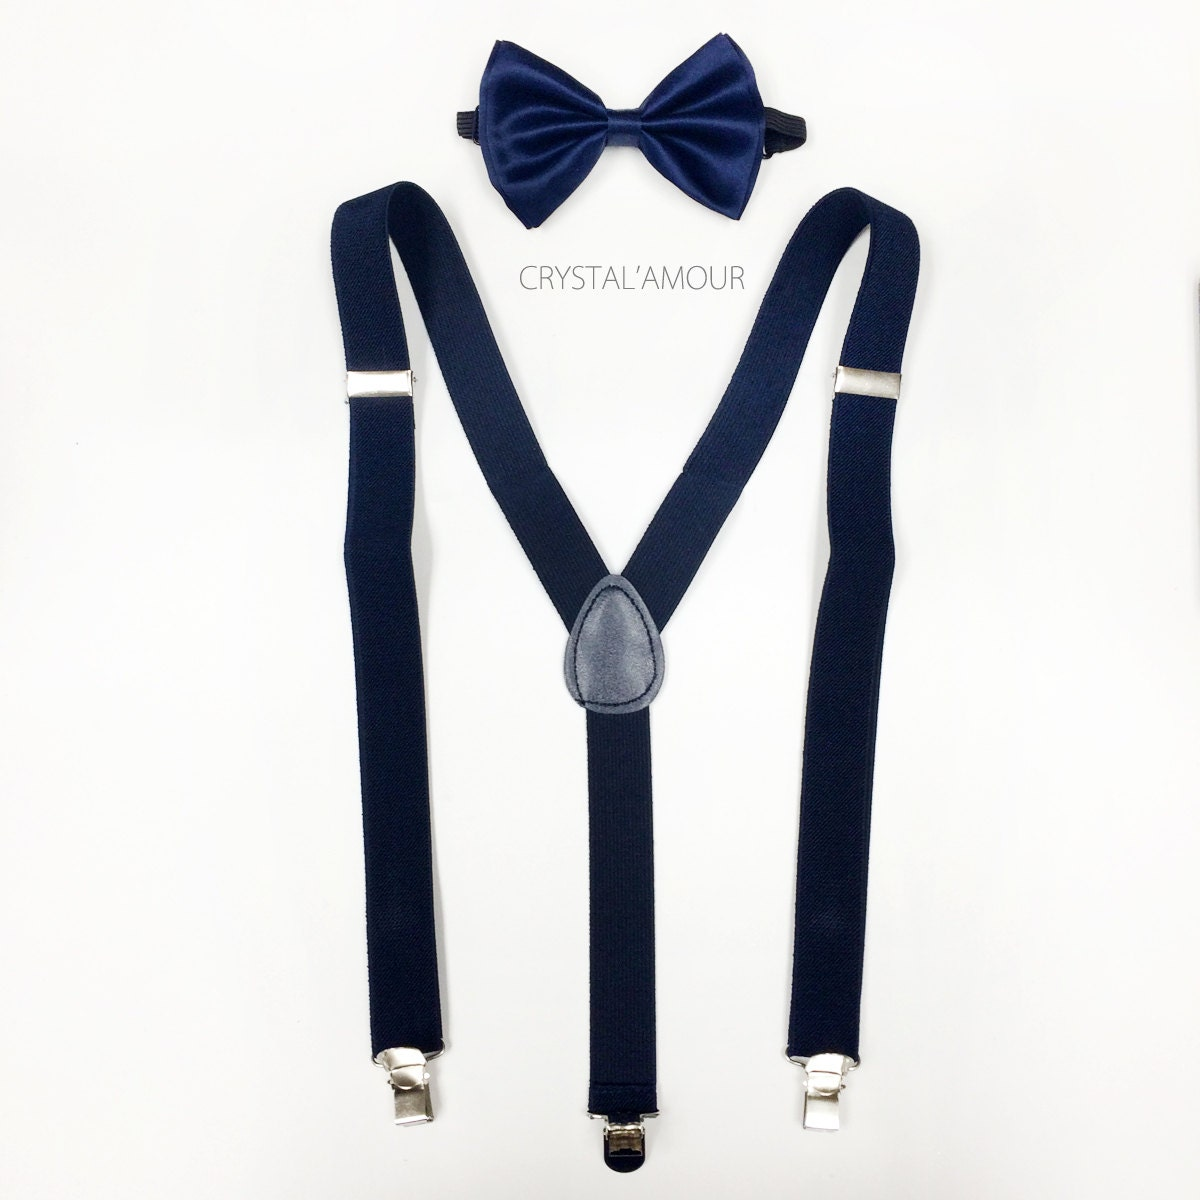 These classic navy blue suspenders are perfect for everyday or formal wear. Adjustable from approximately to inches to fit most men. Holds securely in place with three silver-tone clips.